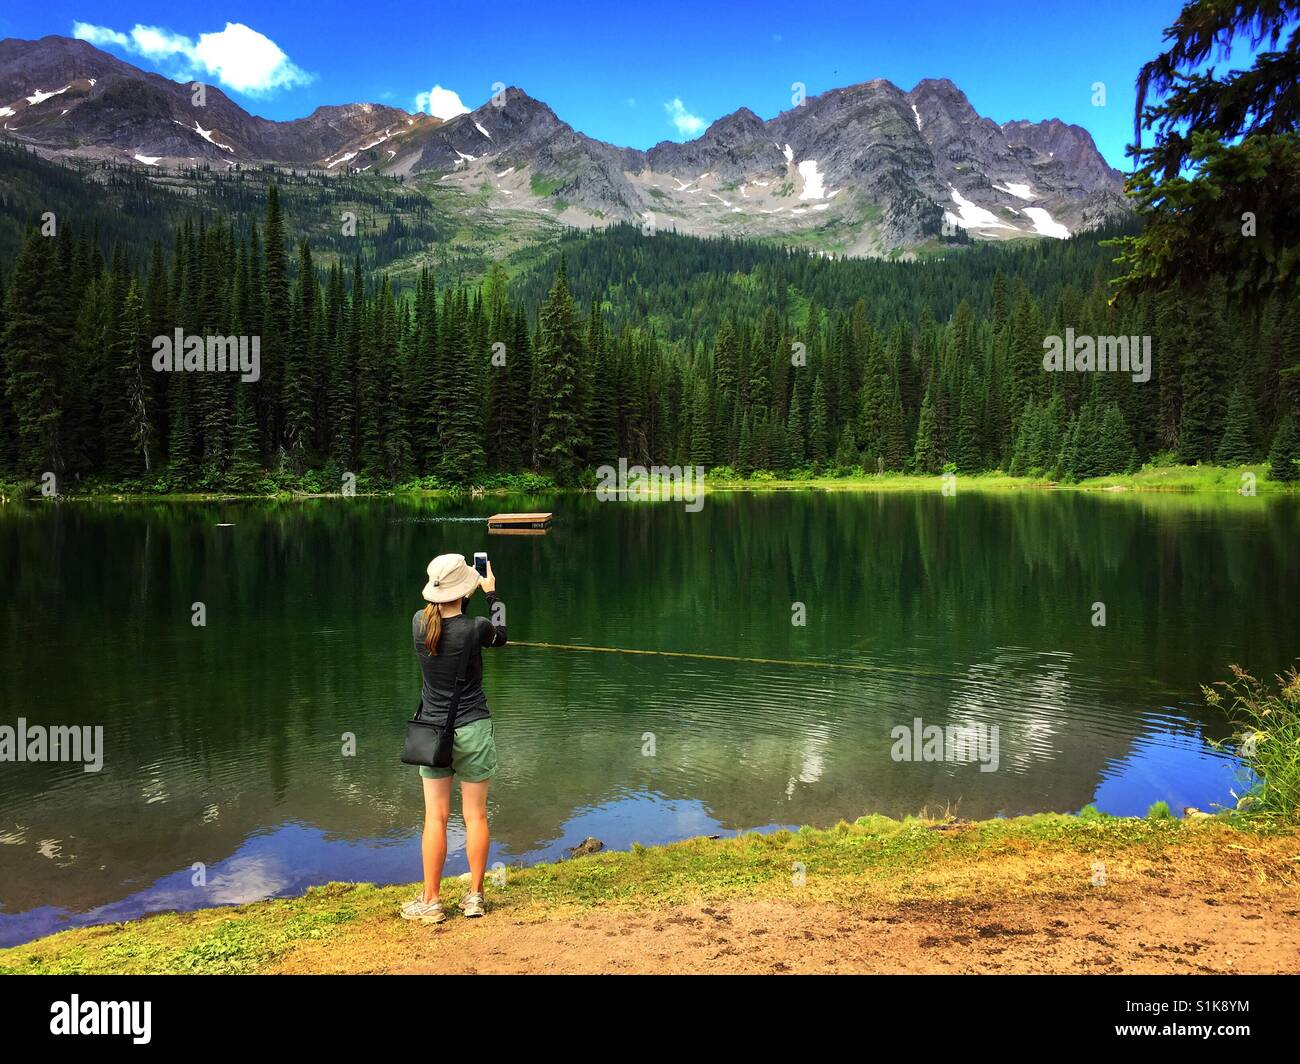 A young woman takes a picture of a beautiful mountain lake scene with her mobile phone - Stock Image